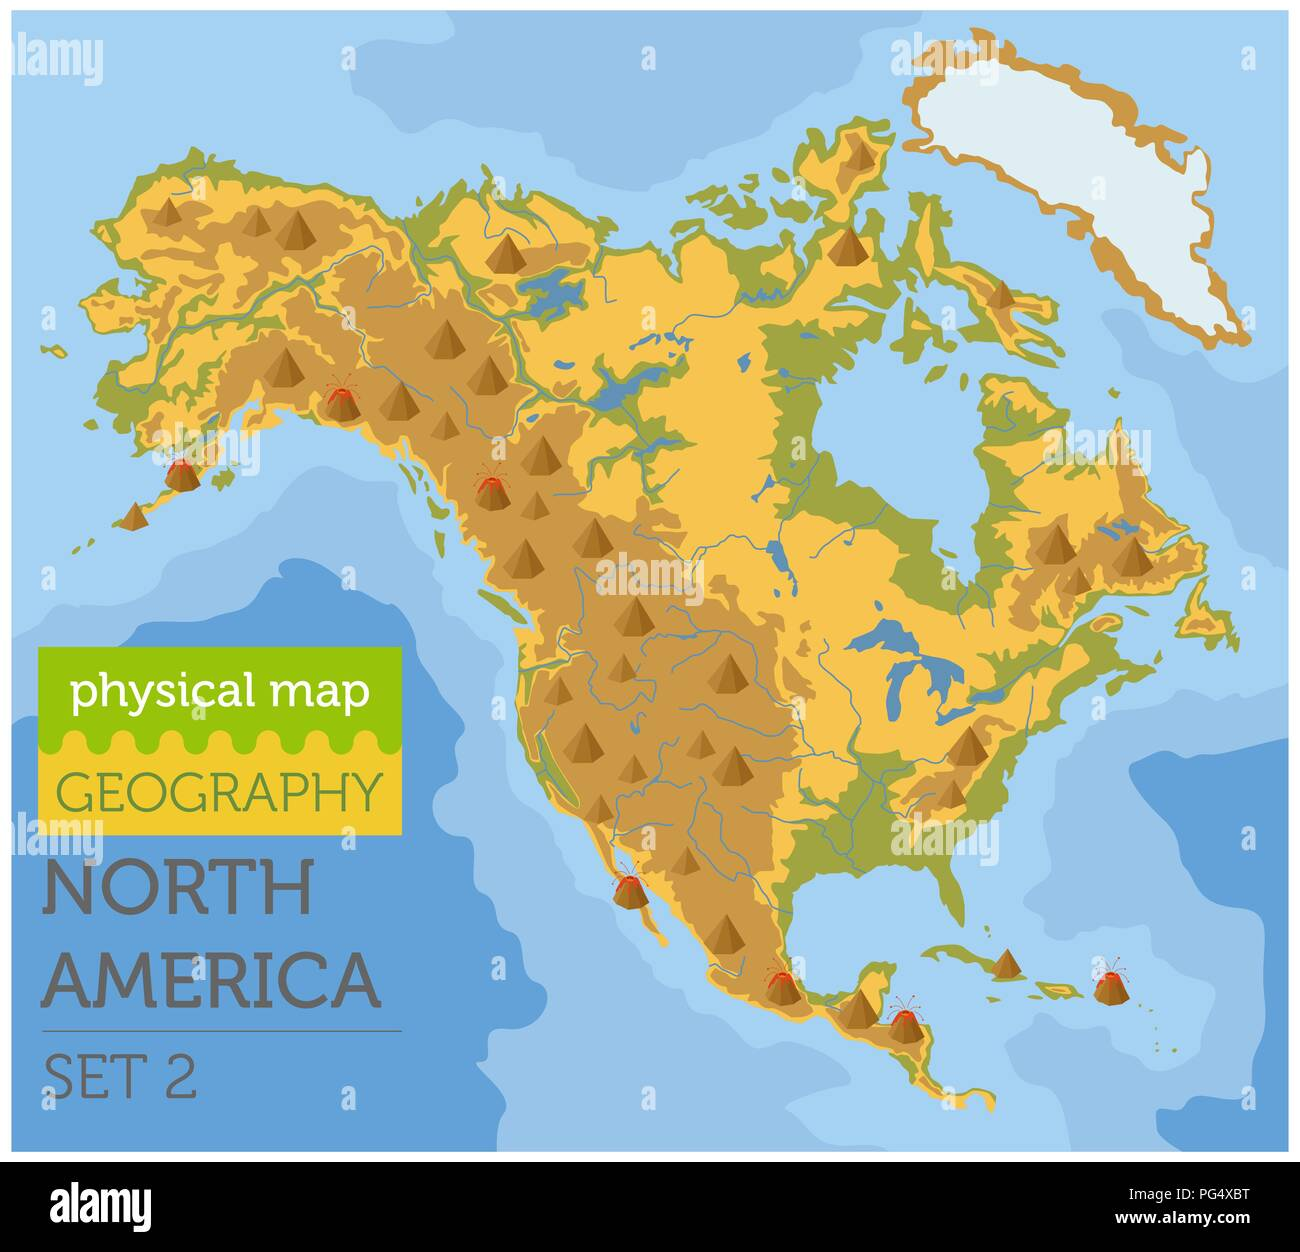 North America physical map elements. Build your own geography info ...